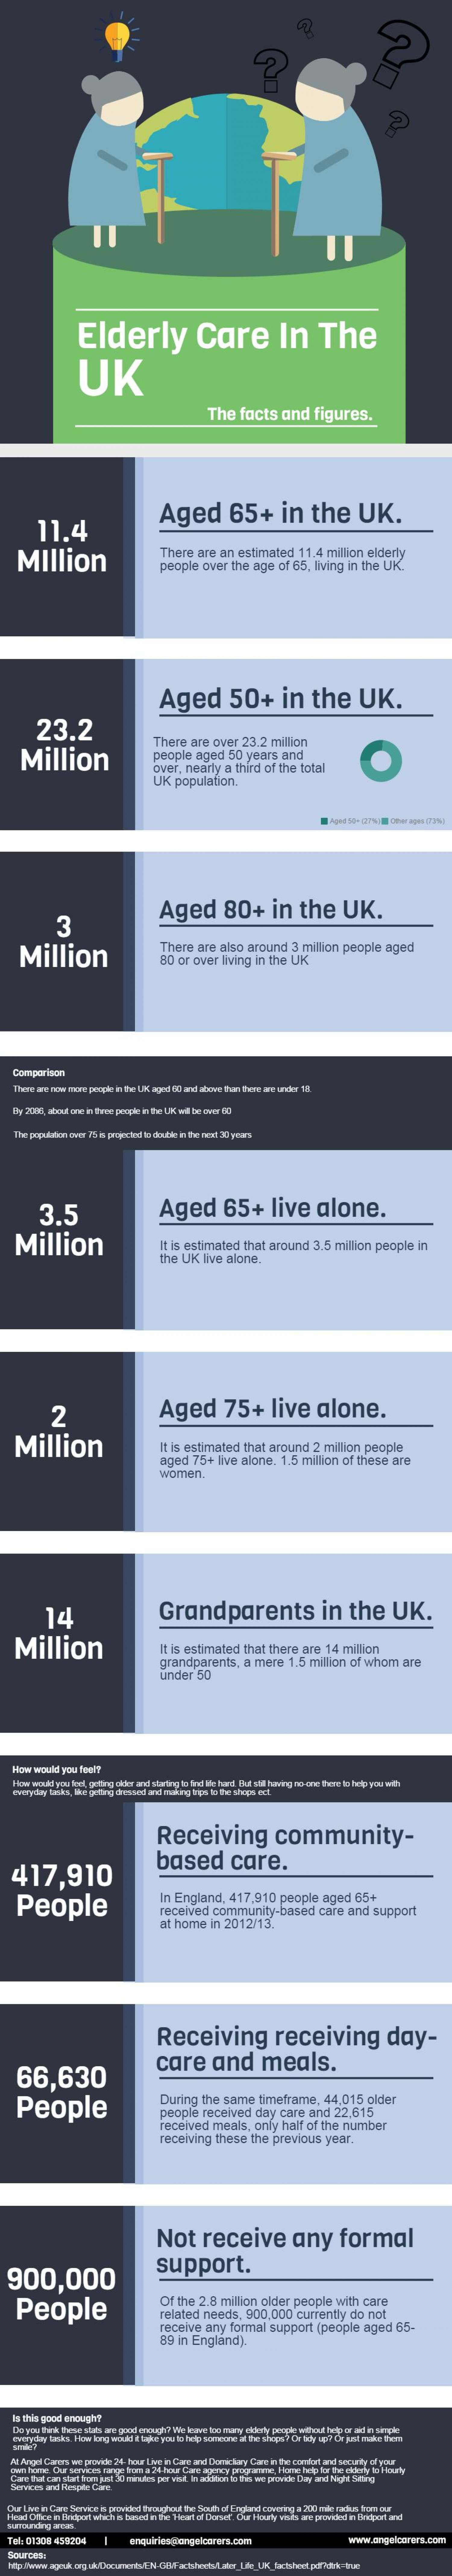 Elderly Care In The UK - The facts and figures. Infographic